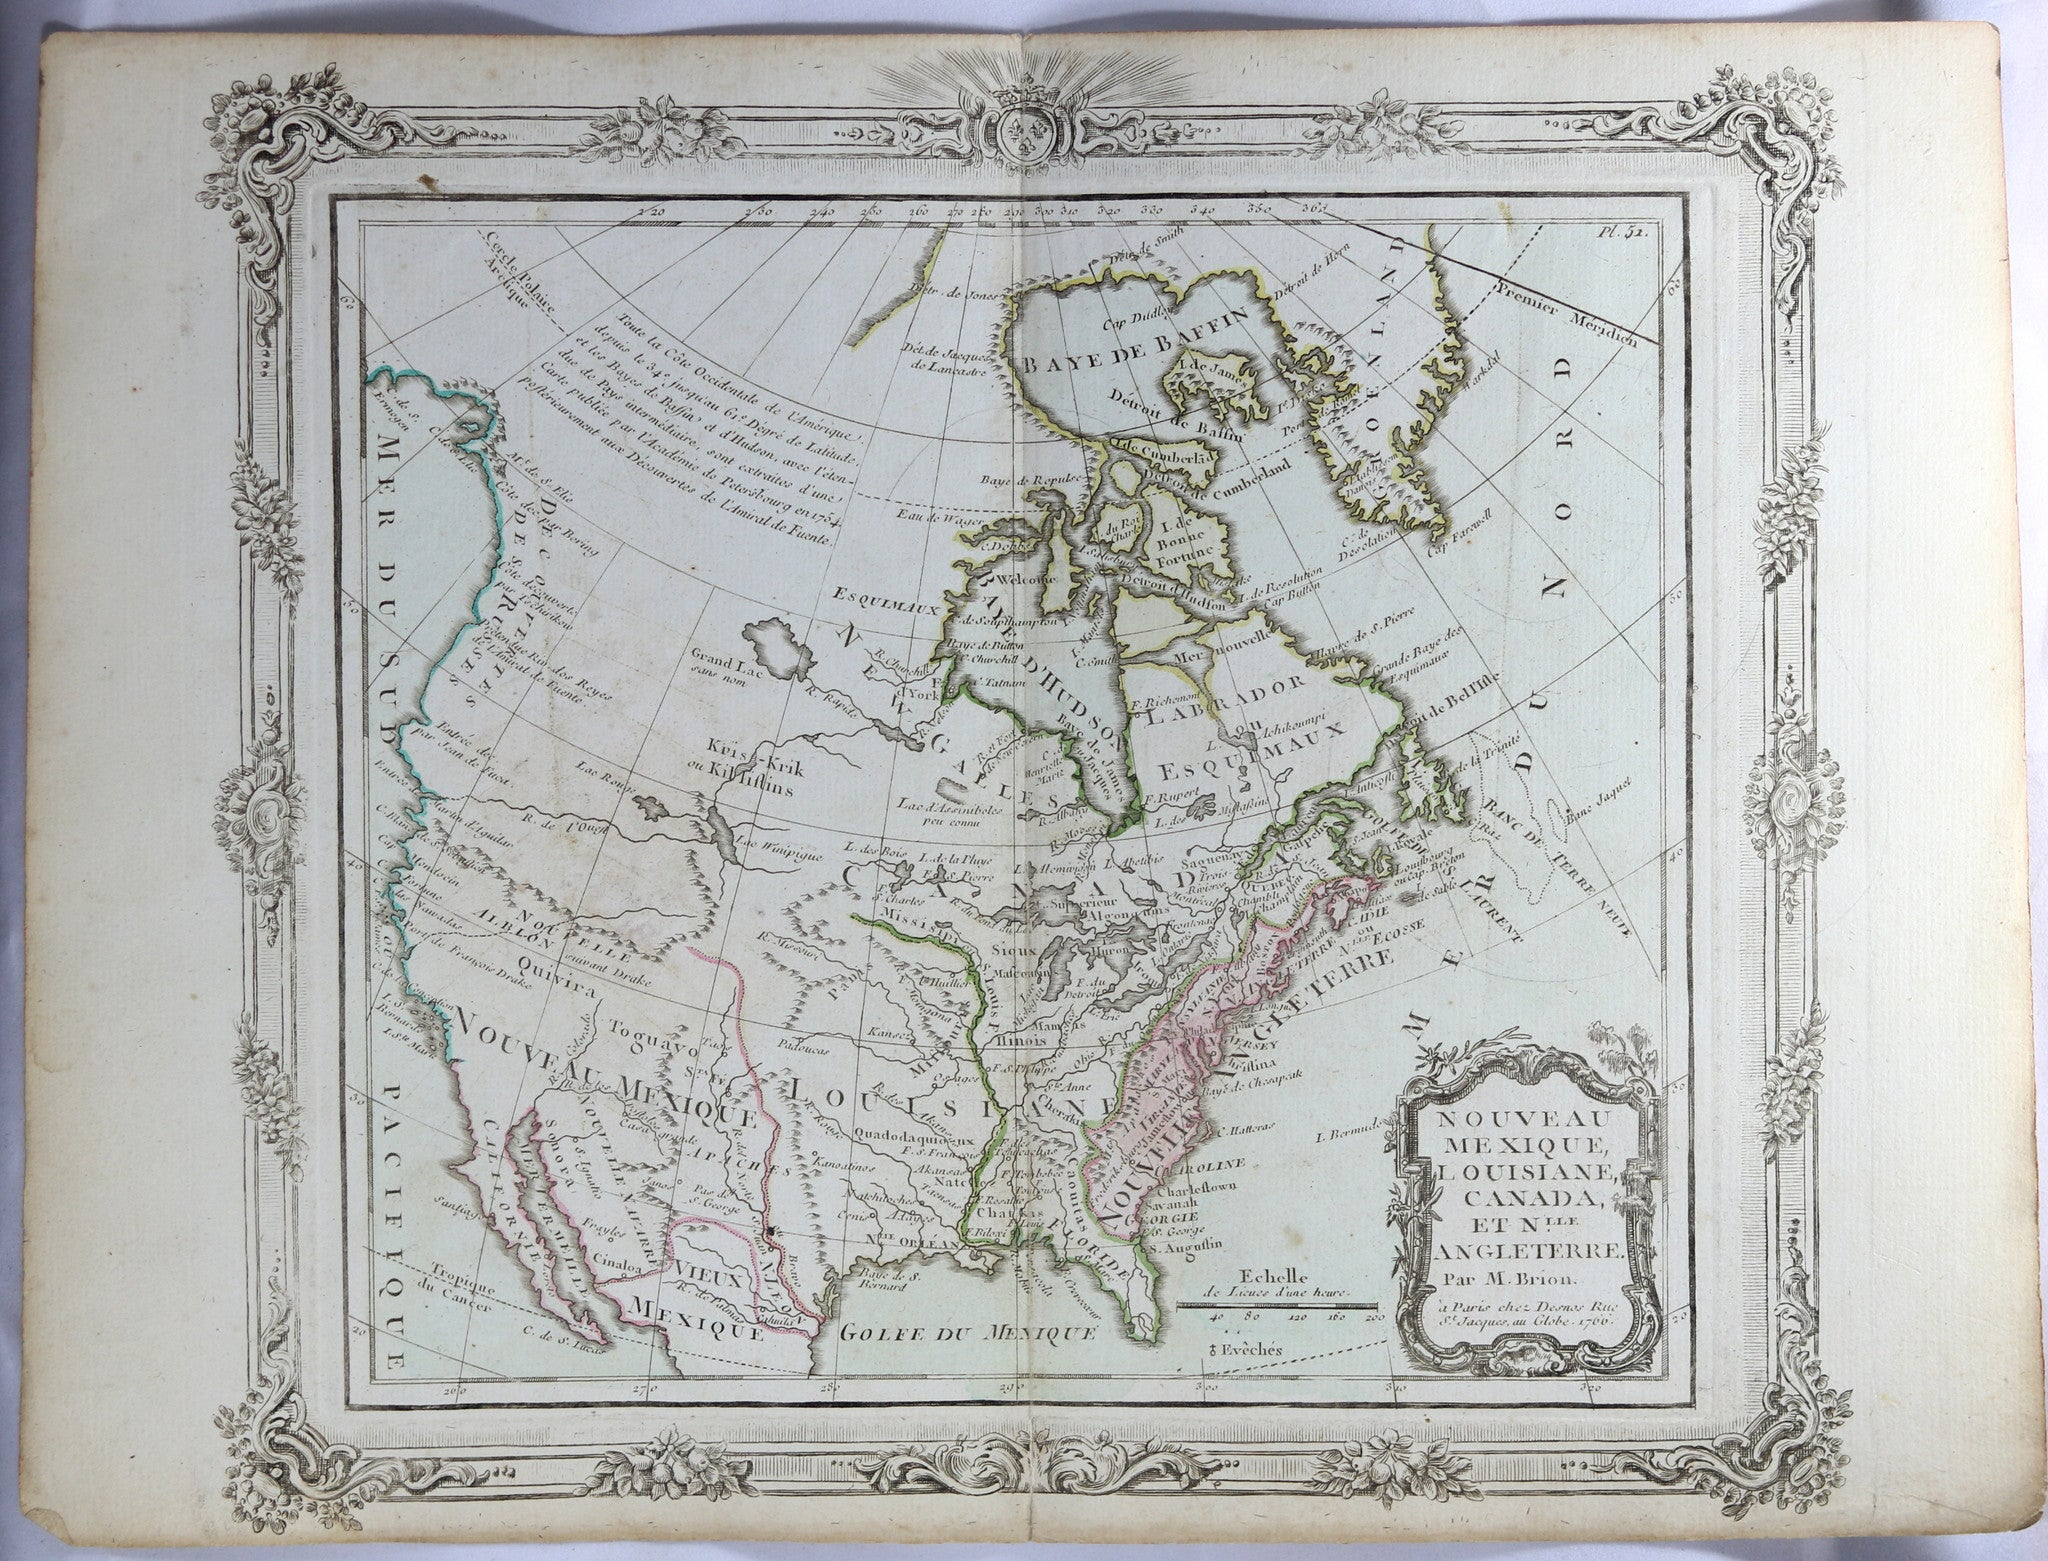 North New Mexico Map.1766 Brion Map Of New Mexico Louisiana Canada And New England